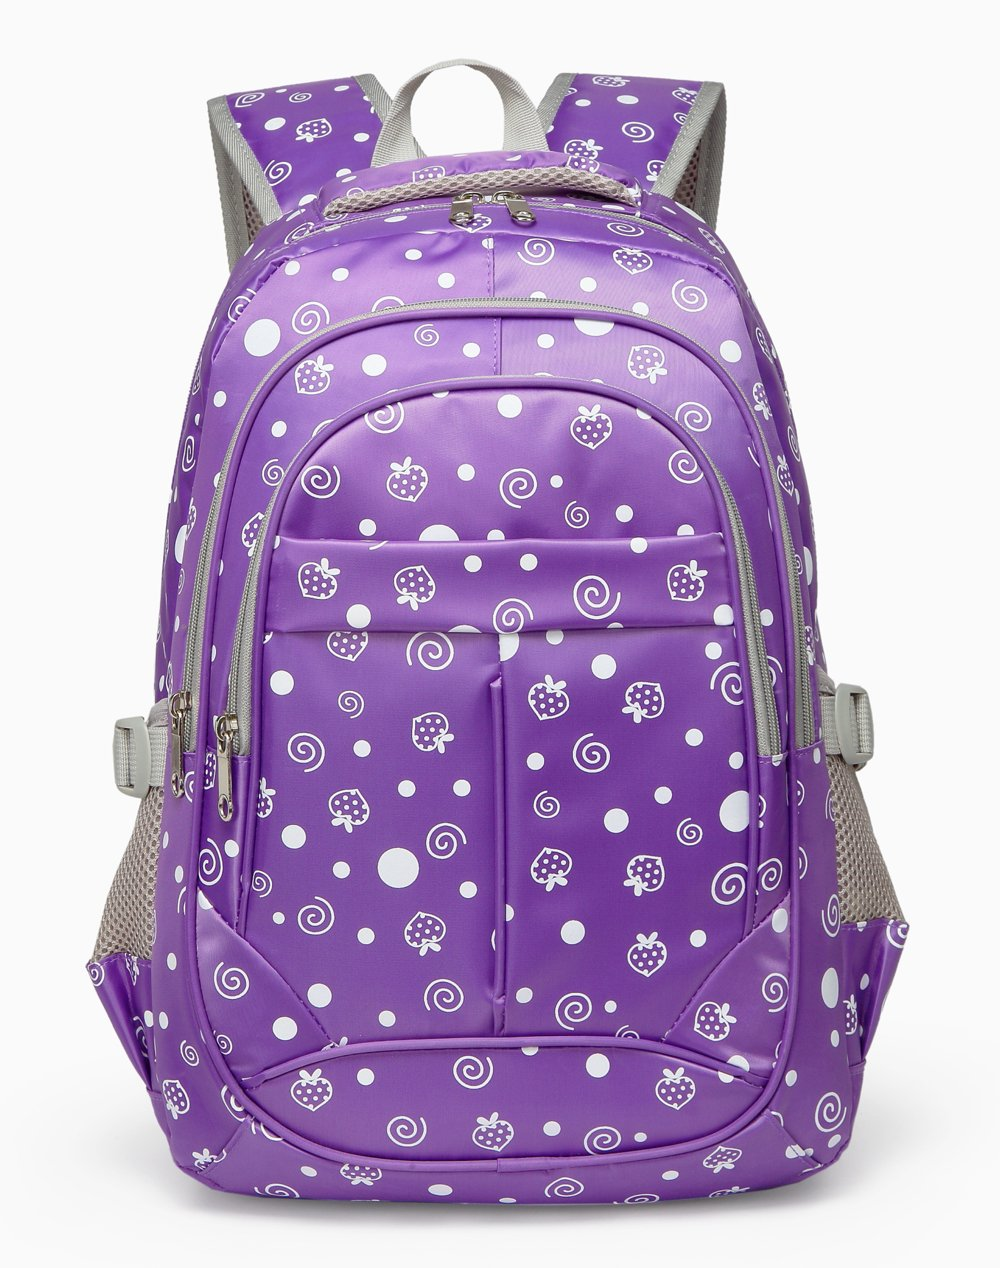 Dots&Strawberry Print Girls Backpack For Kids Elementary School Bags Bookbags/Birthday Gifts Presents (Purple 2)